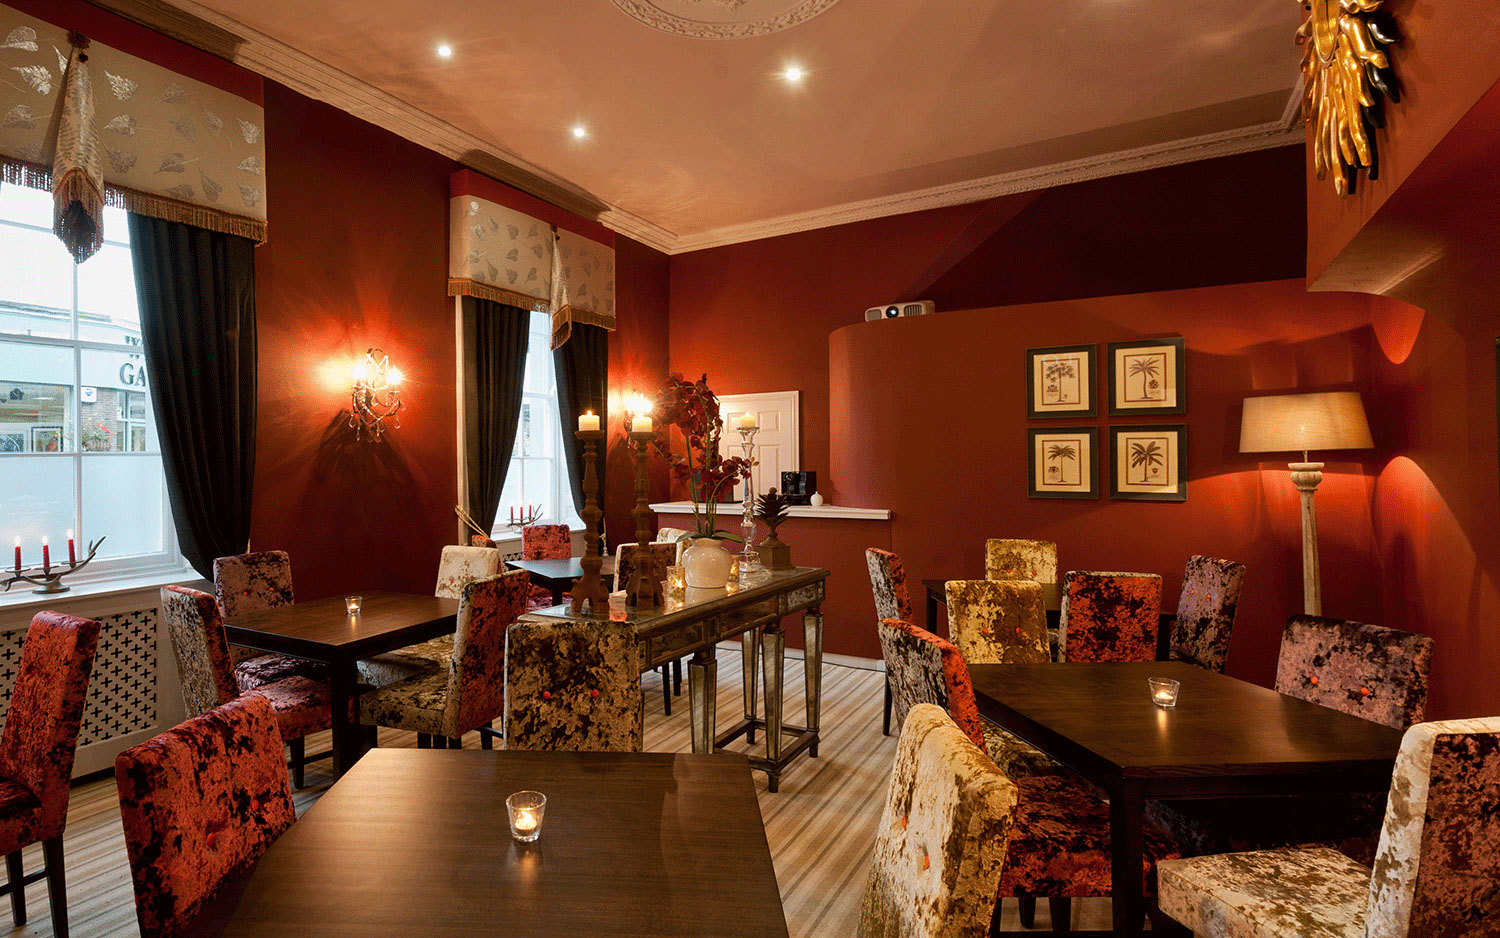 The Townhouse Oswestry - Restaurant by Michael Caines - Shropshire